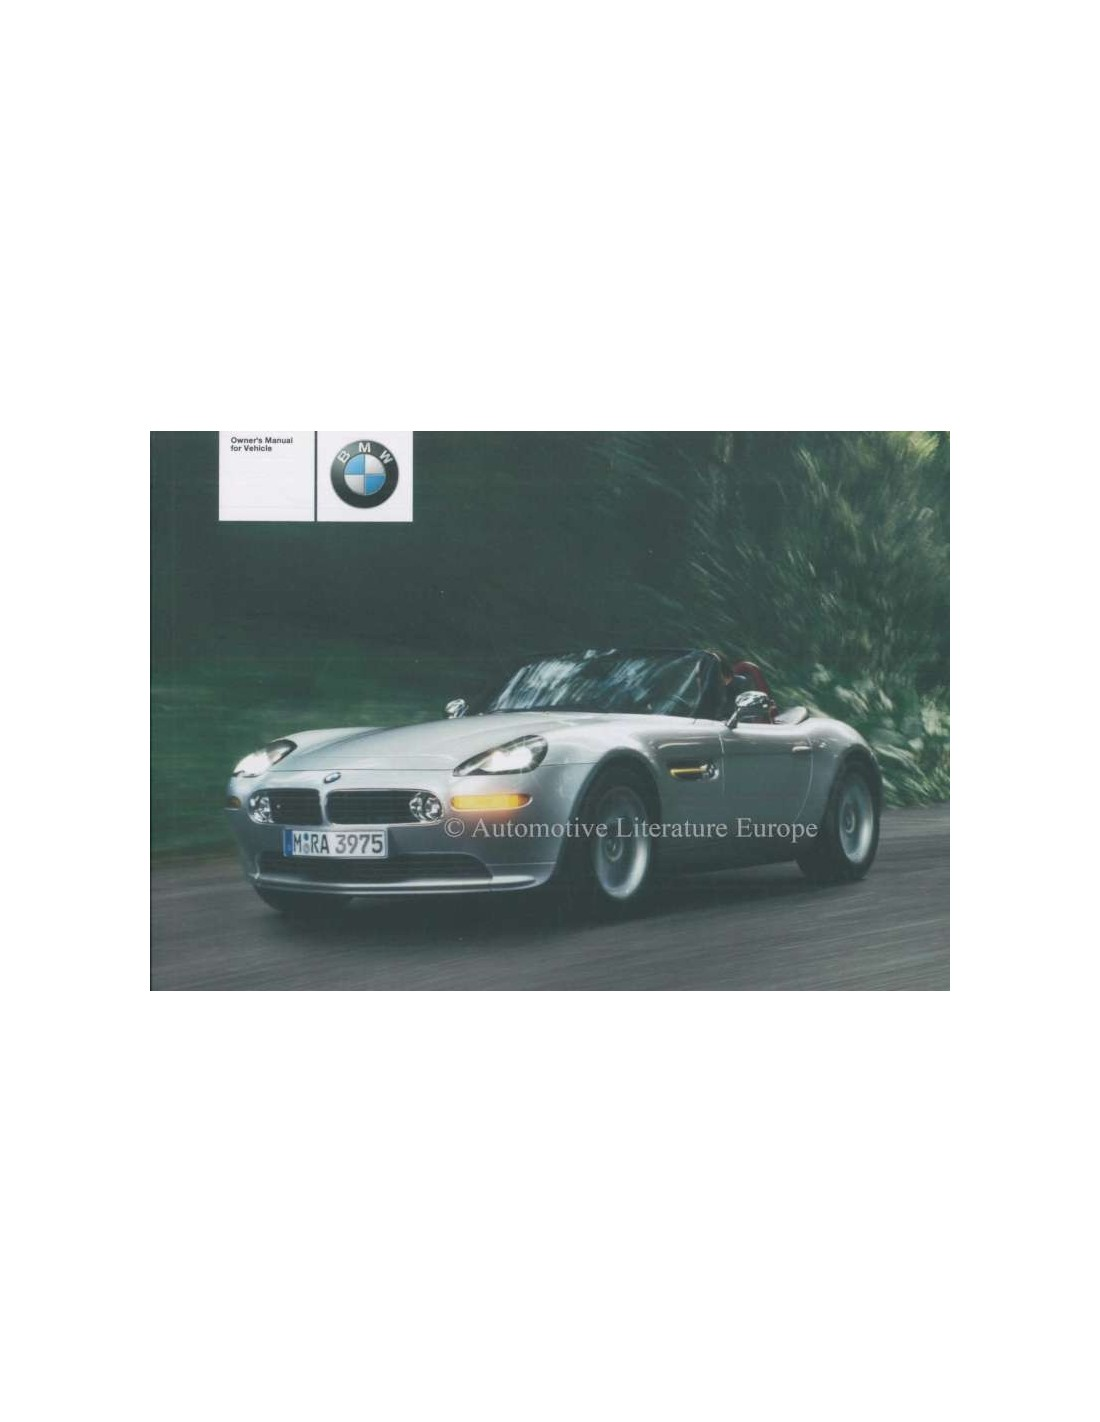 2003 bmw z8 owners manual english us rh autolit eu bmwusa owners manuals for 2006 325i 3 series bmwusa owners manuals html